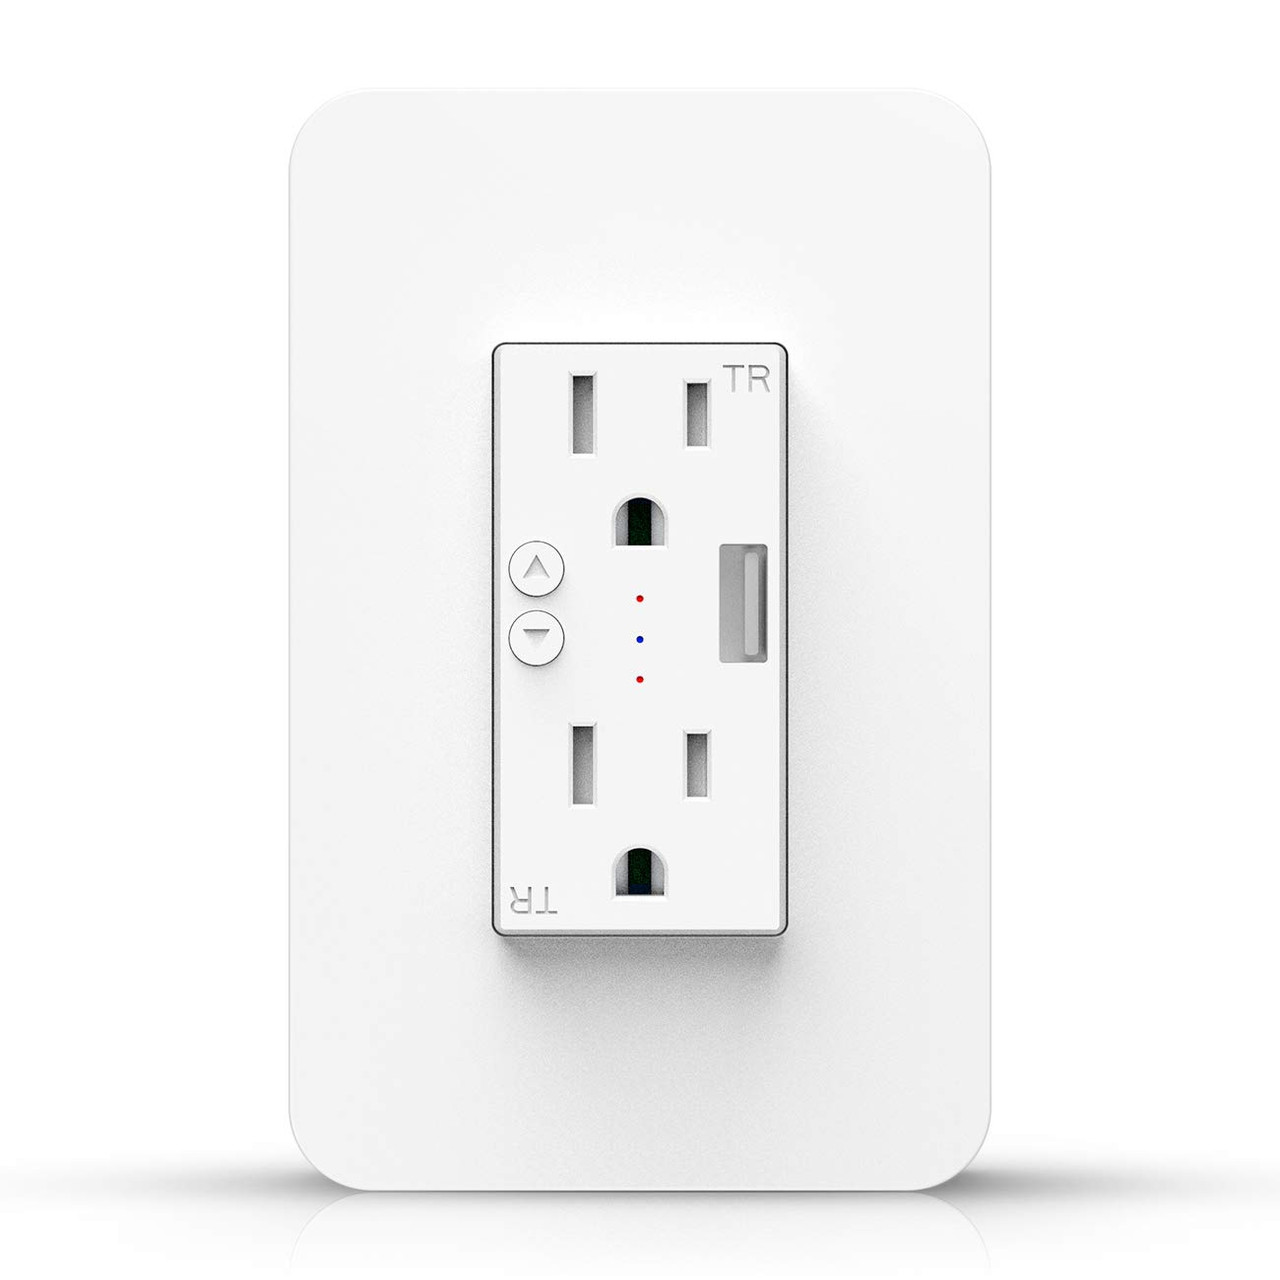 Deco Essentials Smart WiFi Wall Outlet Plug, Compatible with Amazon Alexa and Google Assistant